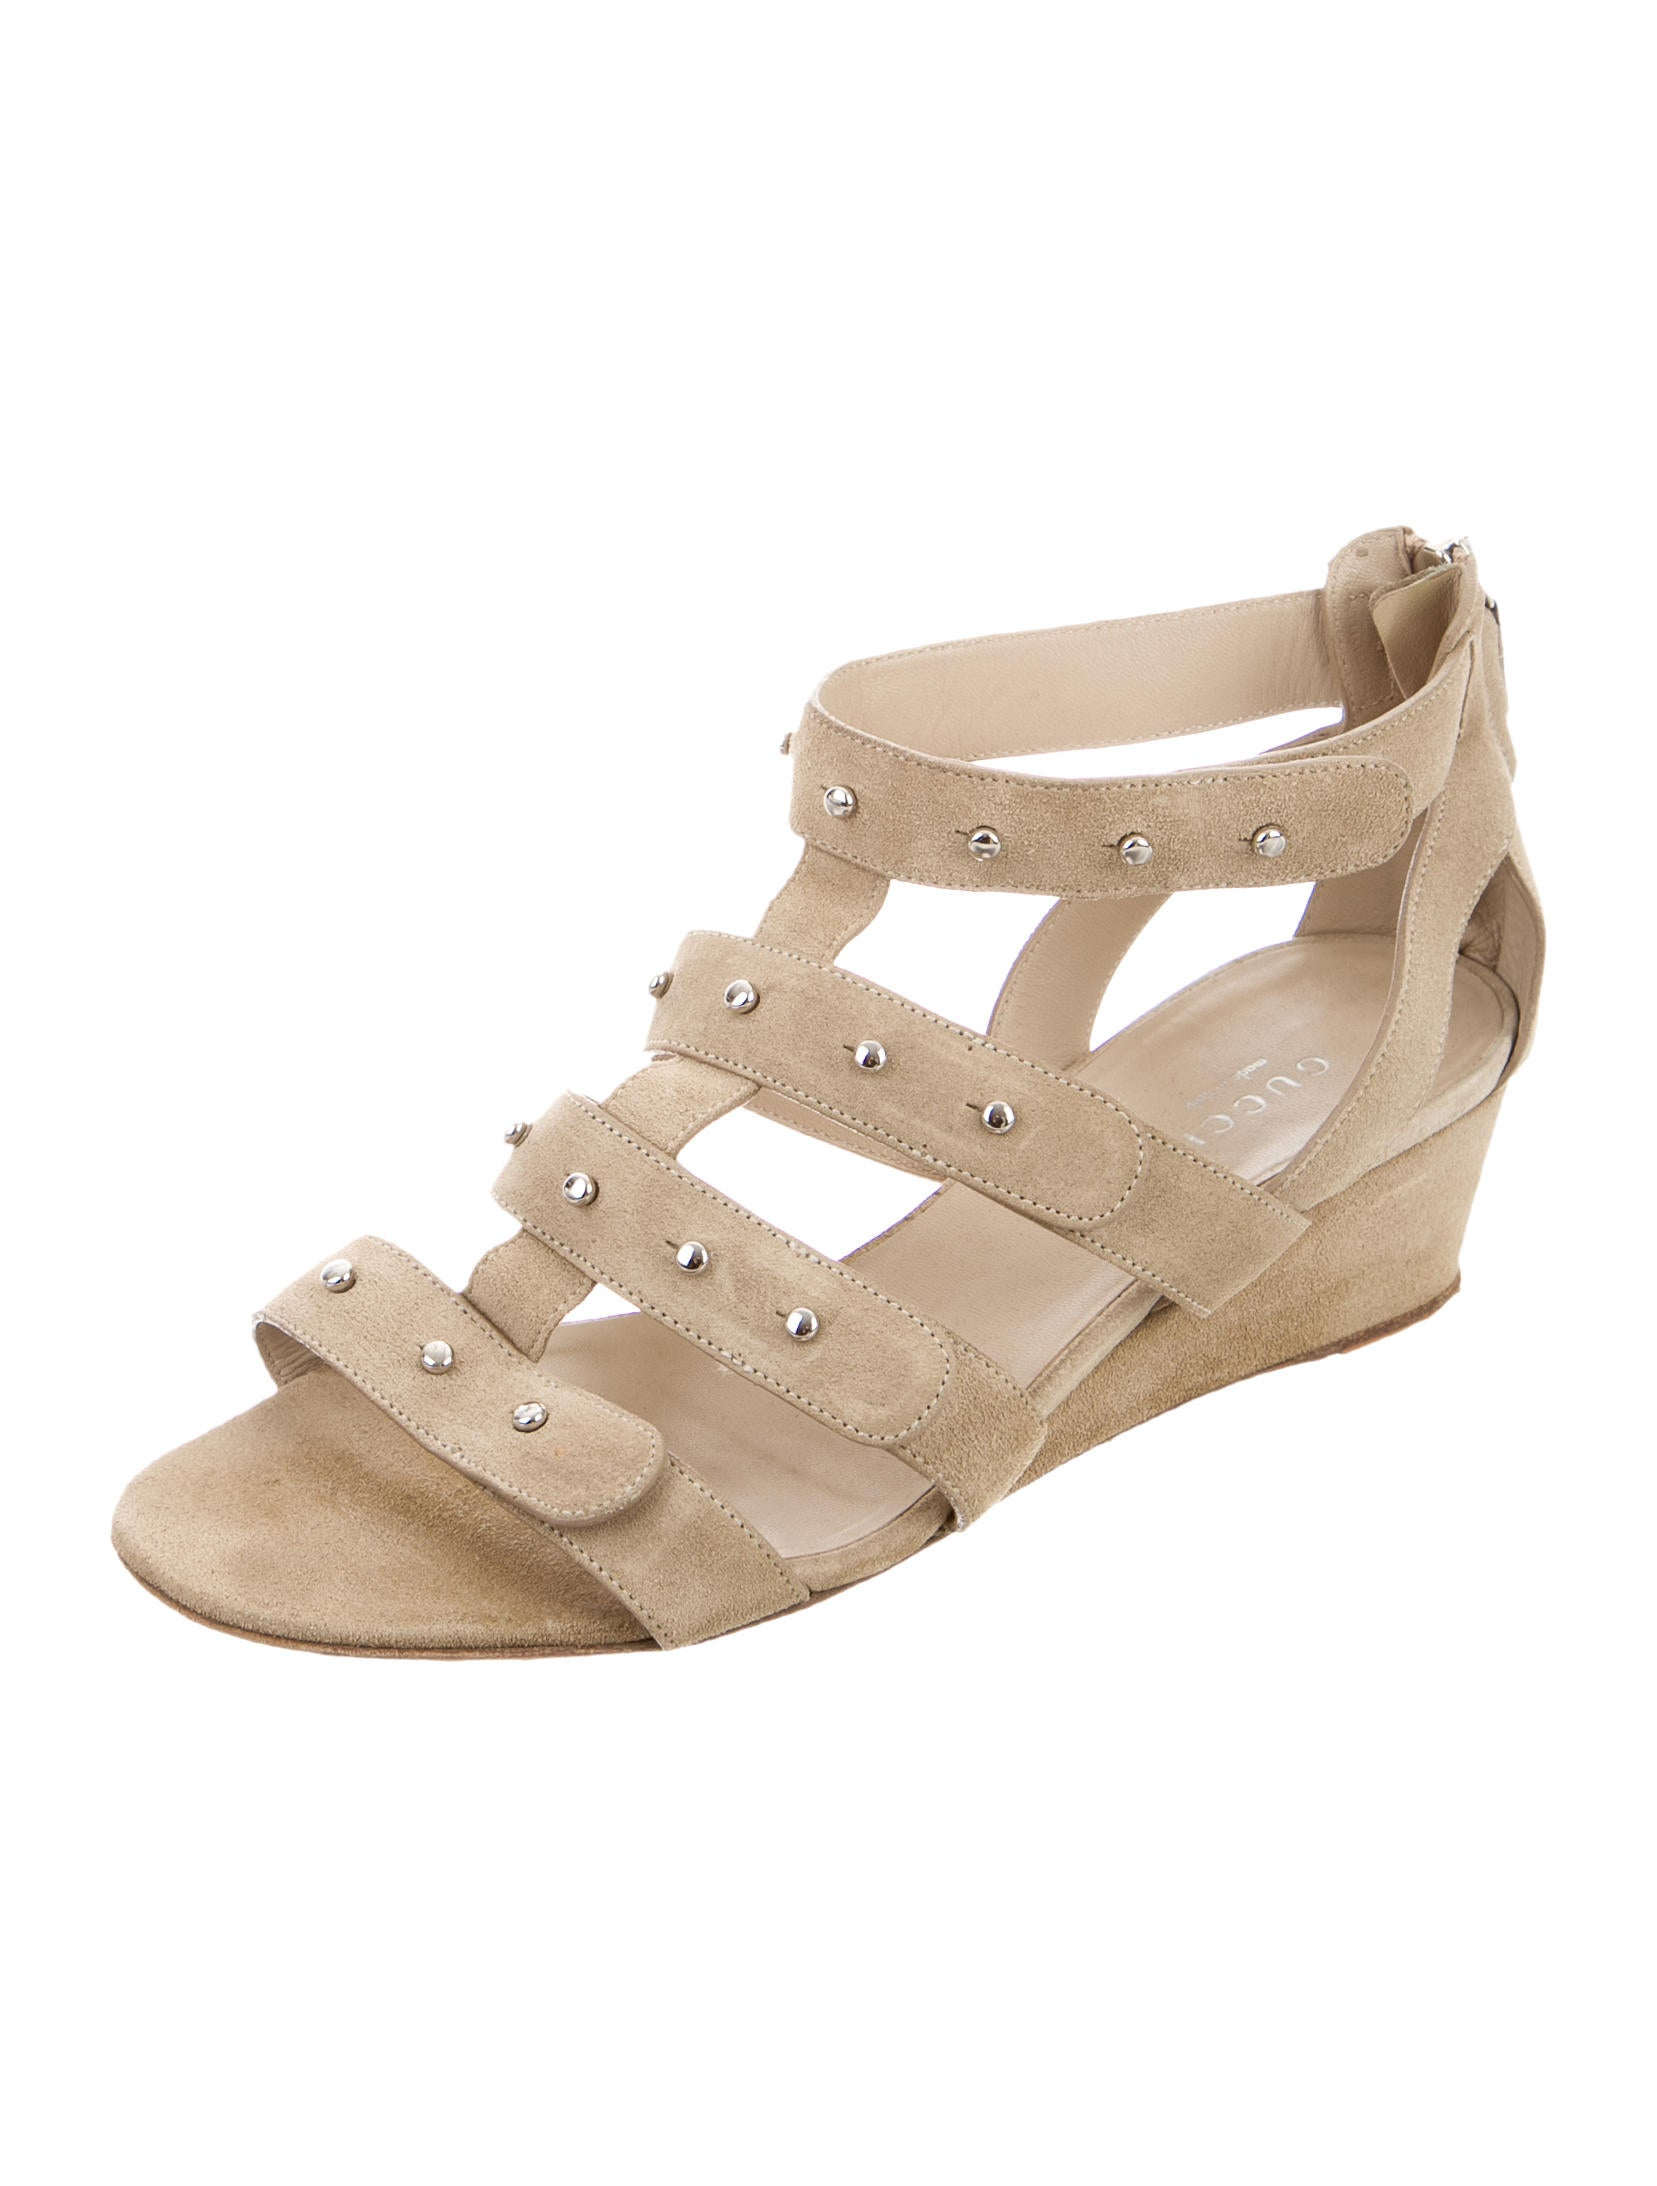 gucci studded wedge sandals shoes guc131464 the realreal